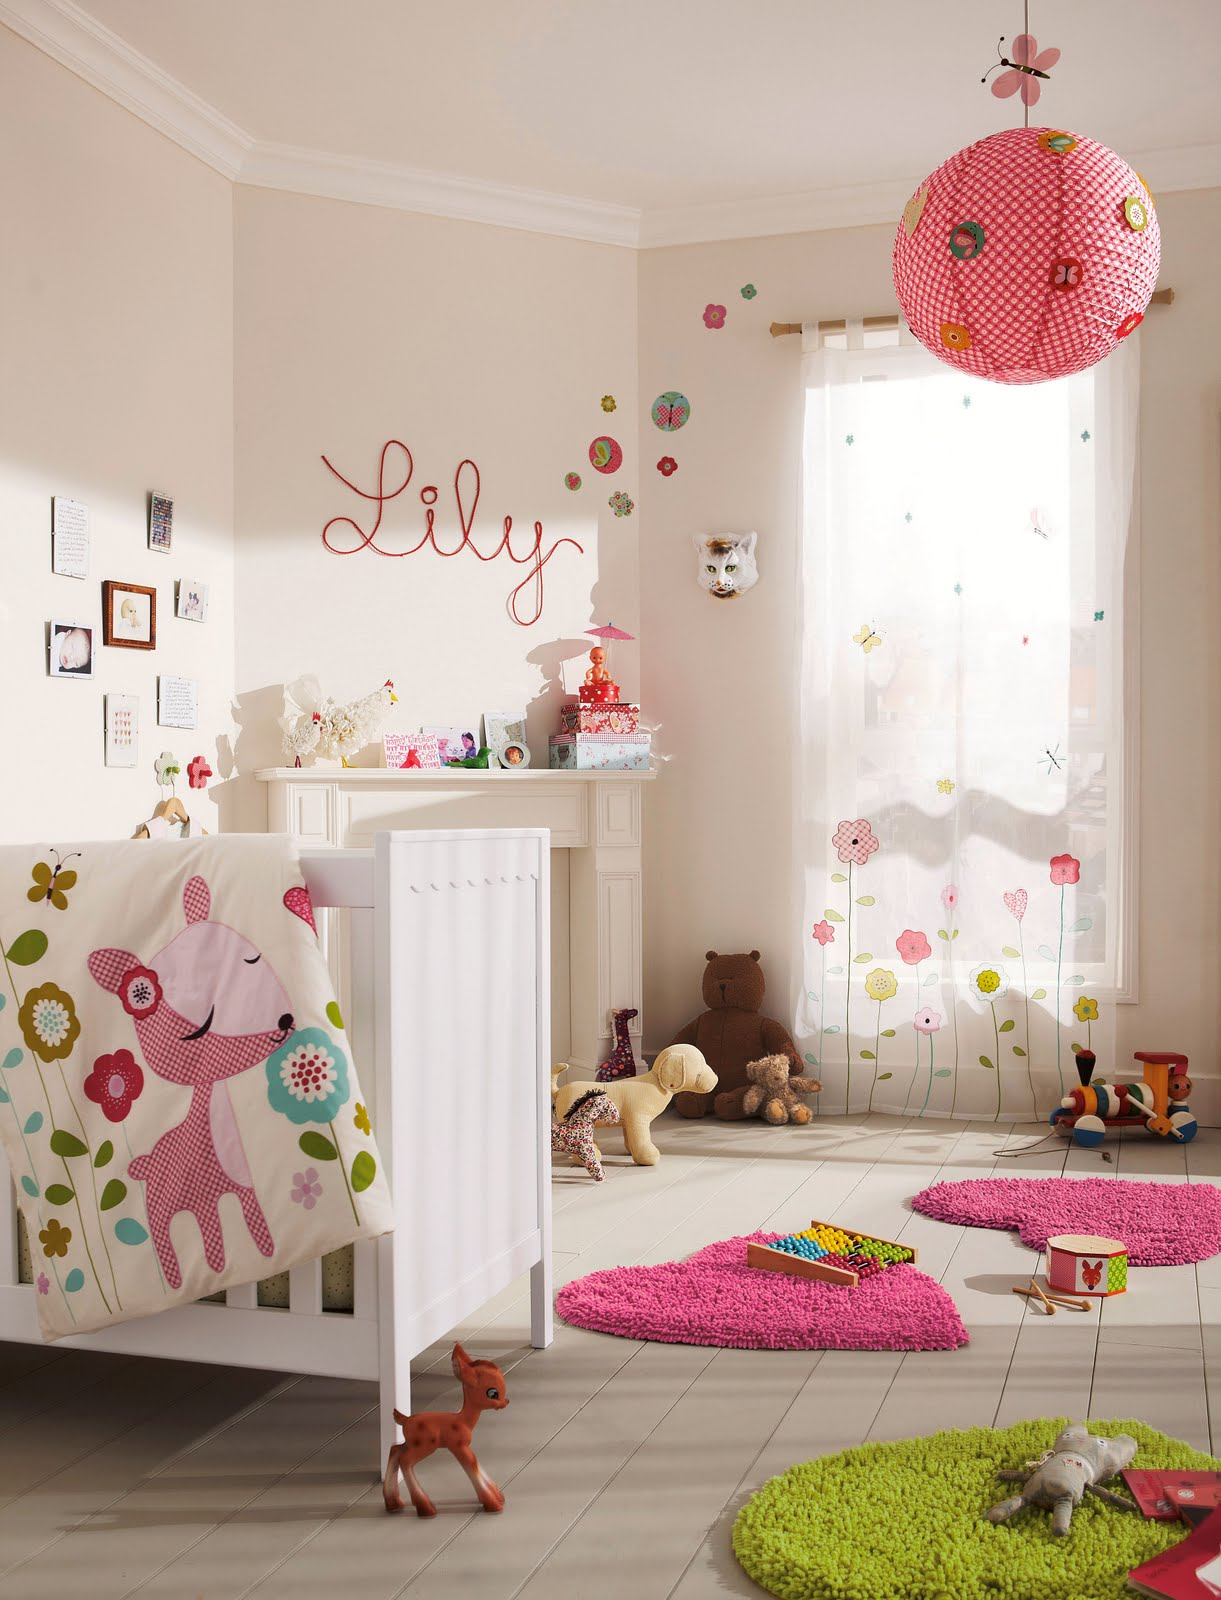 Chambre Fille Minnie Inspiration Deco Kids Room 1 Chérie Sheriff Blog